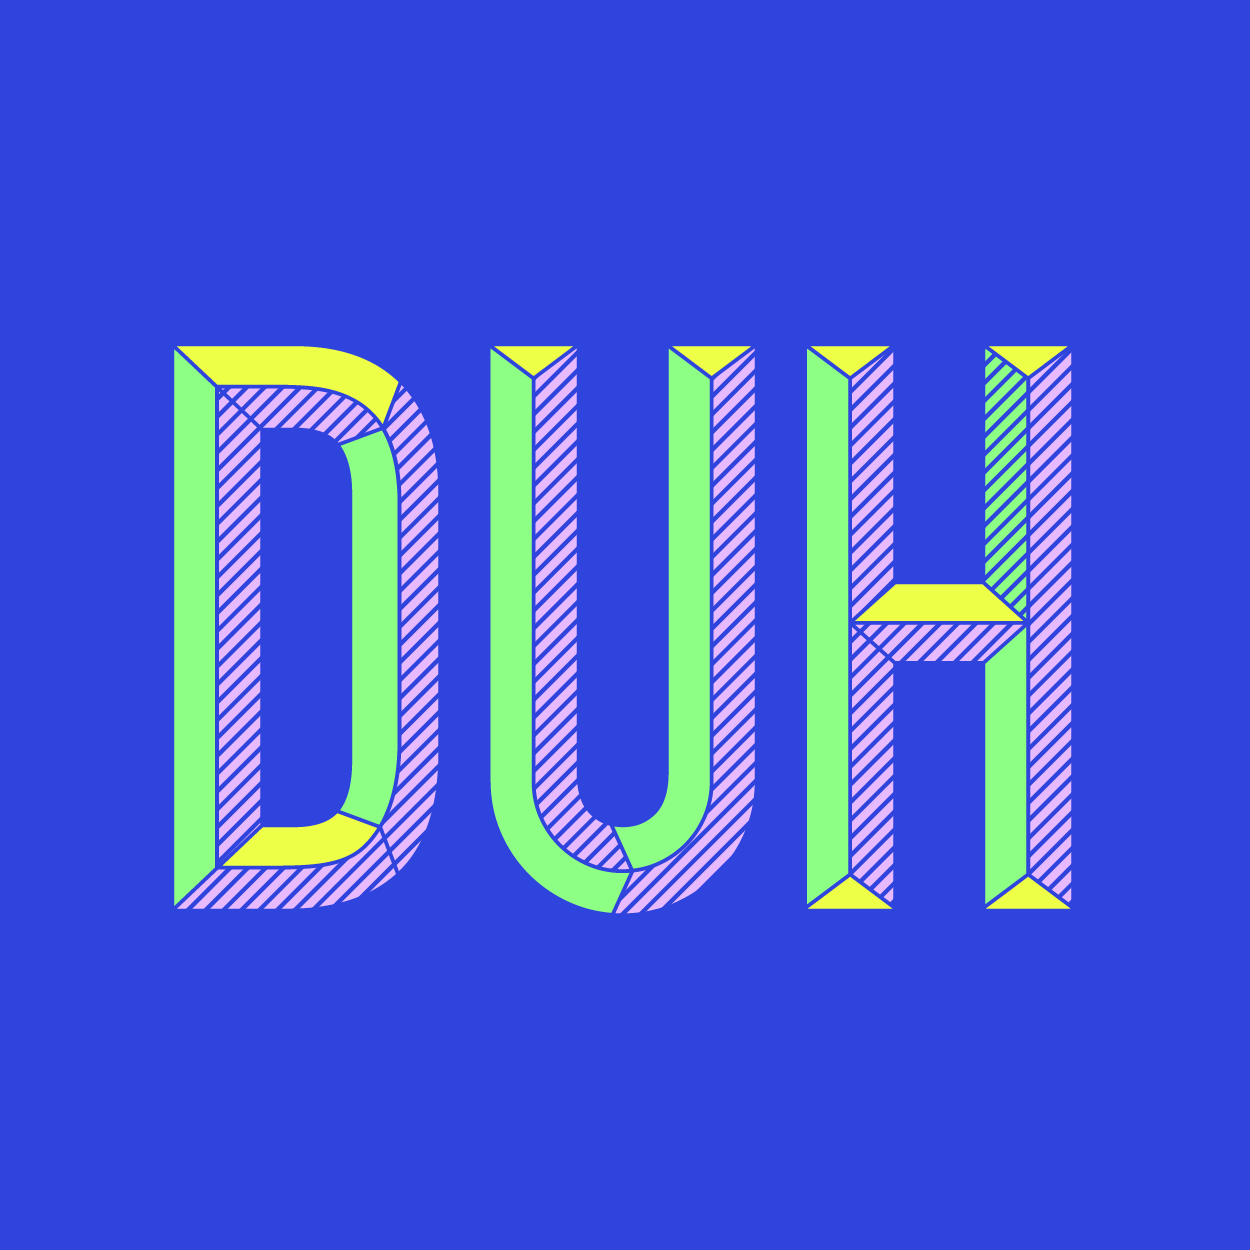 MS-lettering-duh-01.png